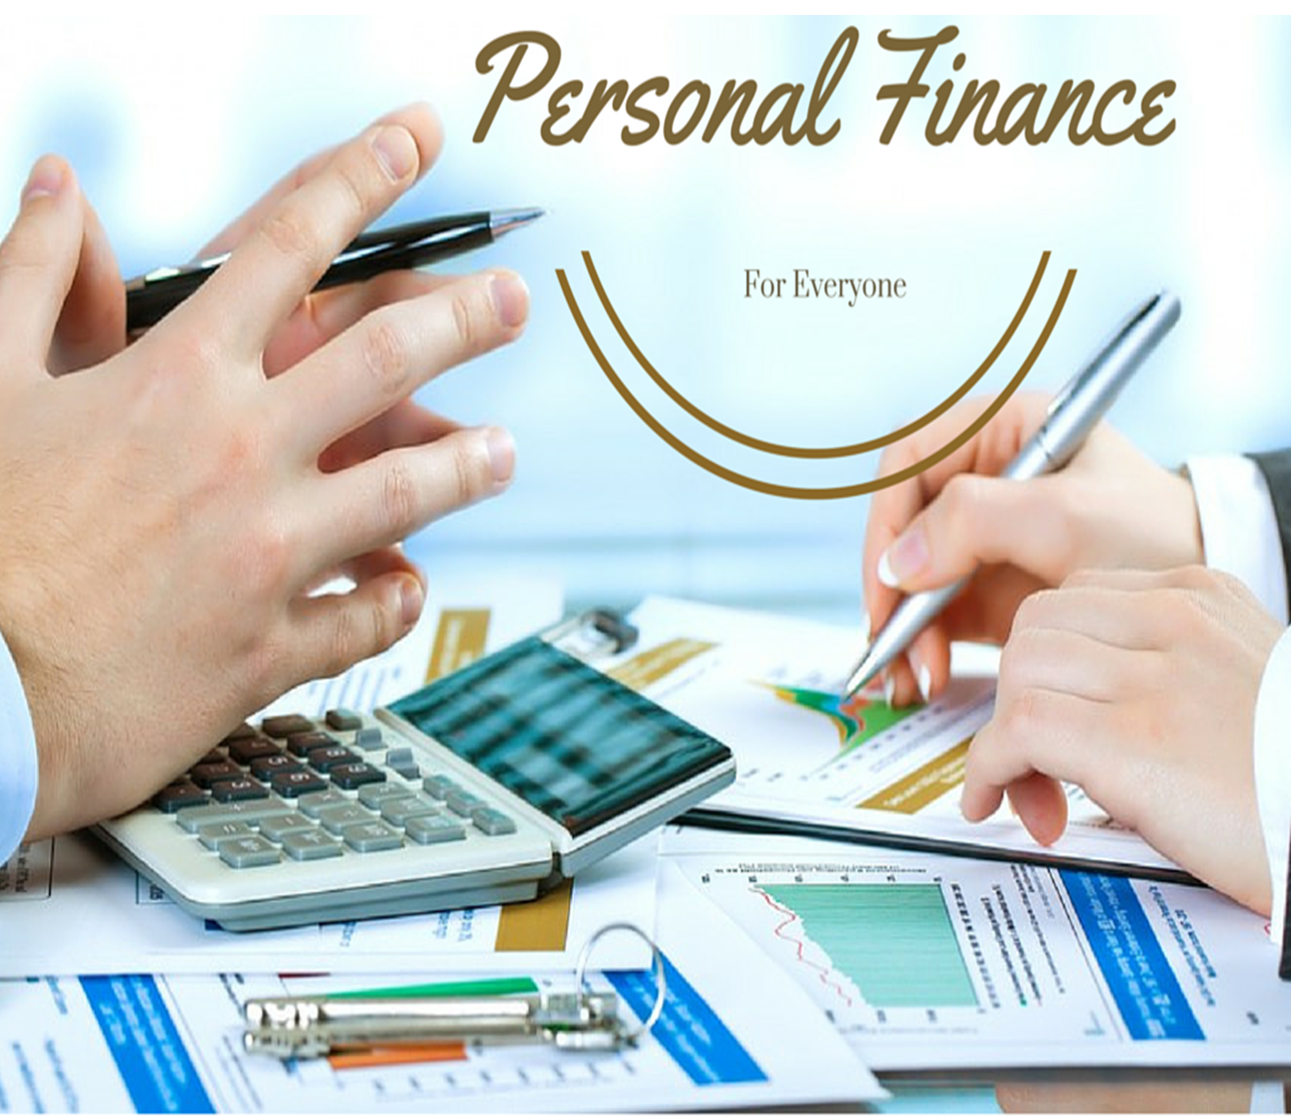 personal finance advice personal financial management - HD1291×1117